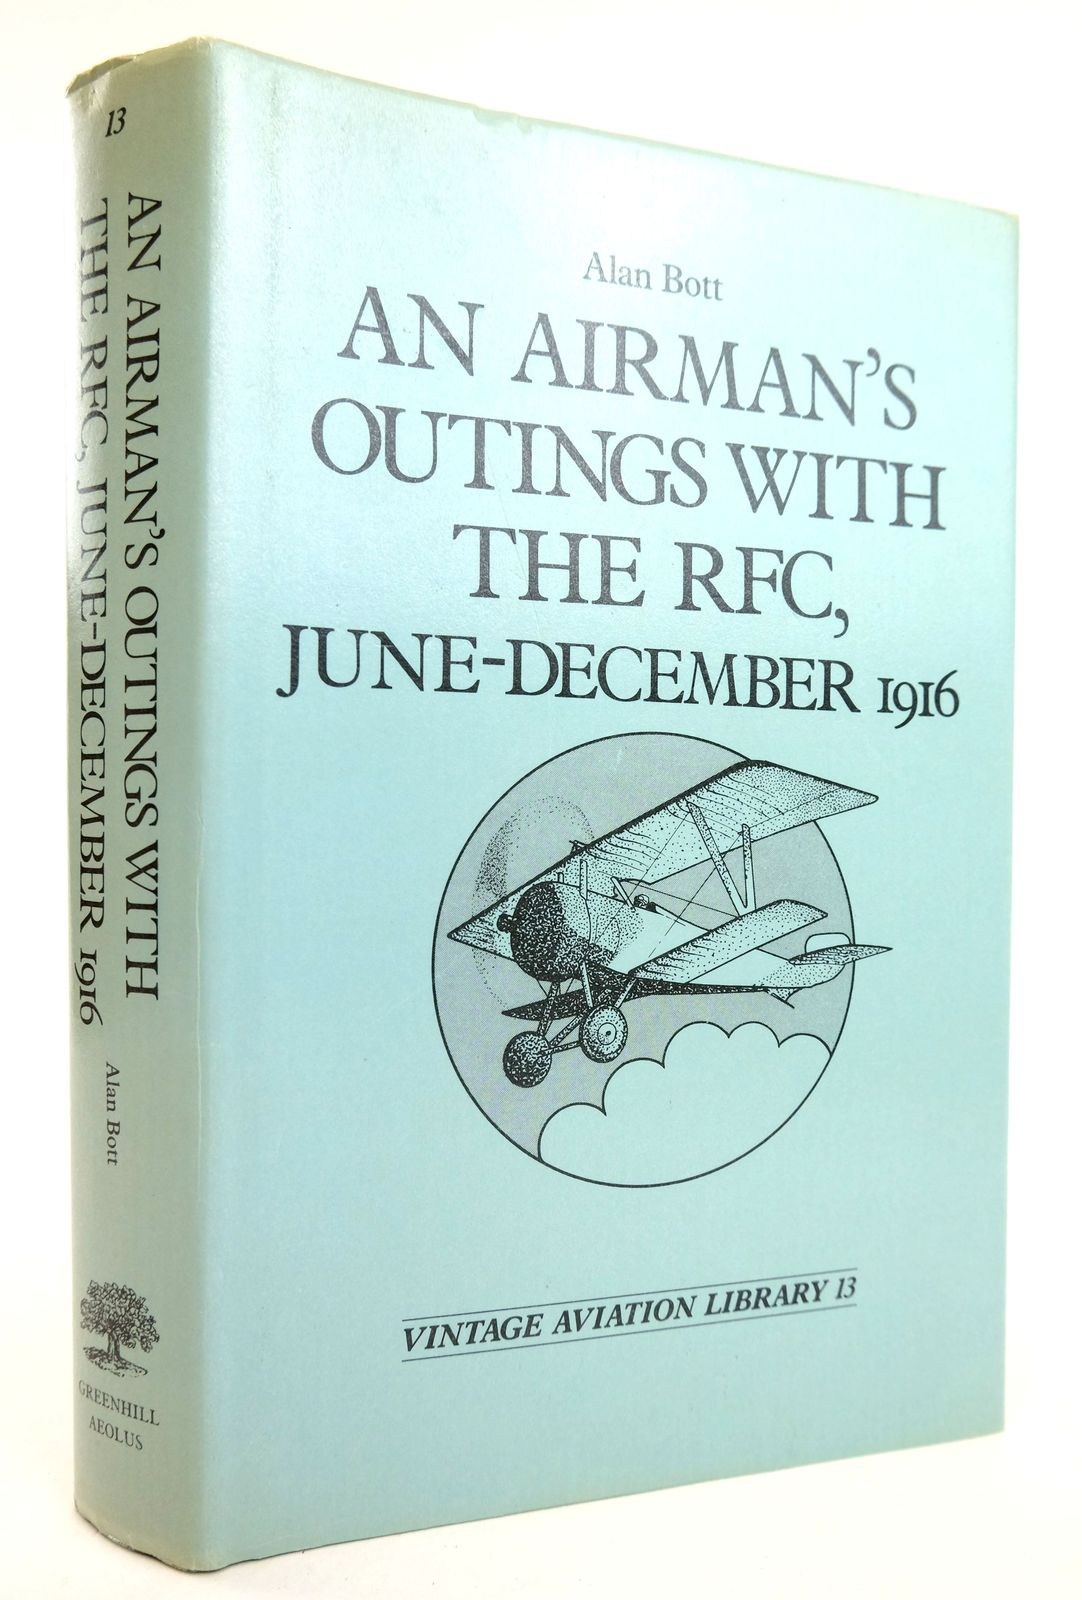 Photo of AN AIRMAN'S OUTINGS WITH THE RFC, JUNE - DECEMBER 1916 written by Bott, Alan published by Greenhill (STOCK CODE: 1819000)  for sale by Stella & Rose's Books